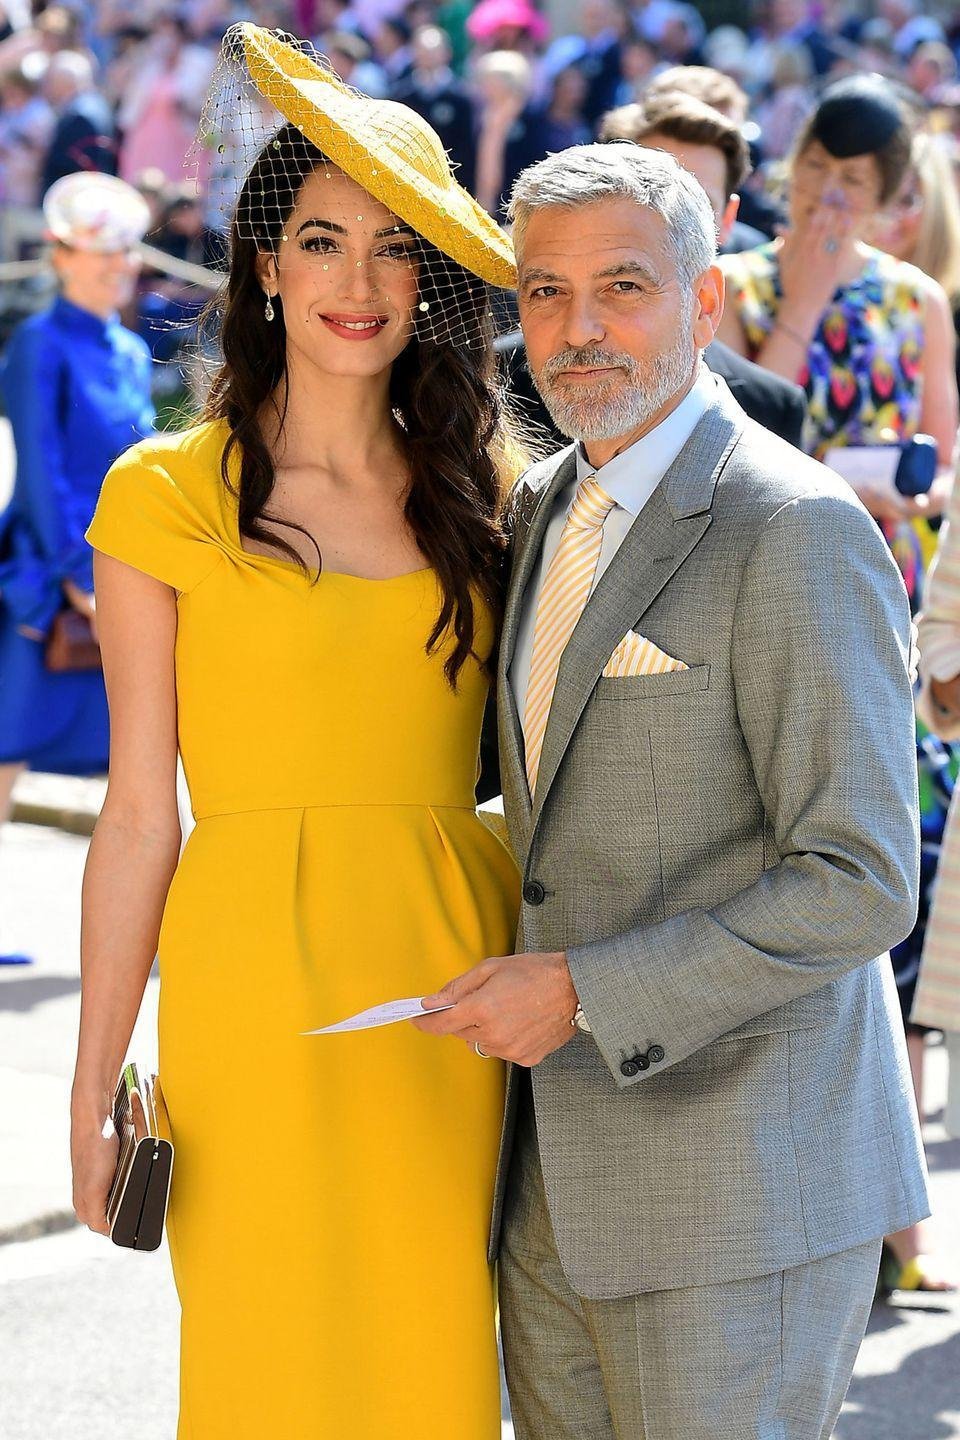 """<p>Given that Jack works for George's tequila company, Casamigos, and that Amal and Meghan are <a rel=""""nofollow noopener"""" href=""""https://www.townandcountrymag.com/society/tradition/g18737078/prince-harry-meghan-markle-royal-wedding-guest-list/"""" target=""""_blank"""" data-ylk=""""slk:friends"""" class=""""link rapid-noclick-resp"""">friends</a>, it wouldn't be unlikely for the glamorous couple to attend a second royal wedding this year.</p>"""